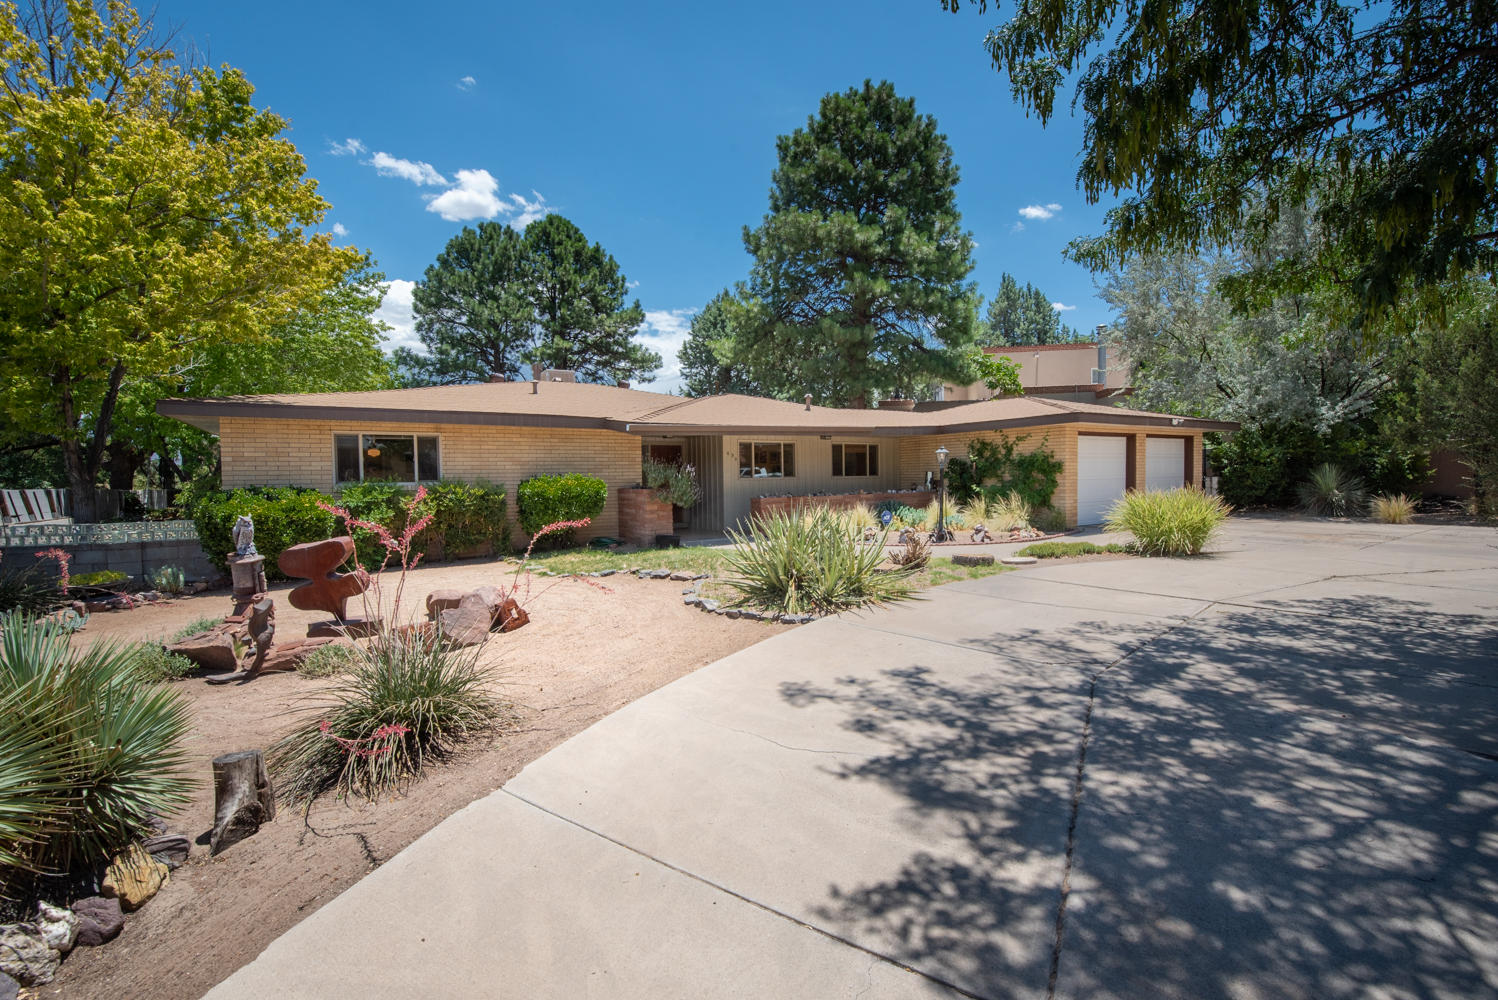 This architectural 1 story rambling ranch home rests in Ridgecrest on a quiet street with a circular driveway in a genuine tree shaded neighborhood. Over-sized backyard with deck has a lot of fun sitting areas for a must have for entertaining with a private wall for privacy. New roof in 2018 & sewer line.This home has great bones with  endless hardwood floors. Comfortable  sized bedrooms.MBedroom suite 22x20 & dressing room 8x10. Eat-in Kitchen 19x18  & formal dining room. Marble window sills under the newer thermal windows throughout.Abundance of kitchen cabinets with light streaming in the kitchen windows.The hallway would be a perfect gallery for artistic art work to display.CFA & refrigerated air & evaporative cooling.Did a mention an over sized 2 car garage. Quality built & charming